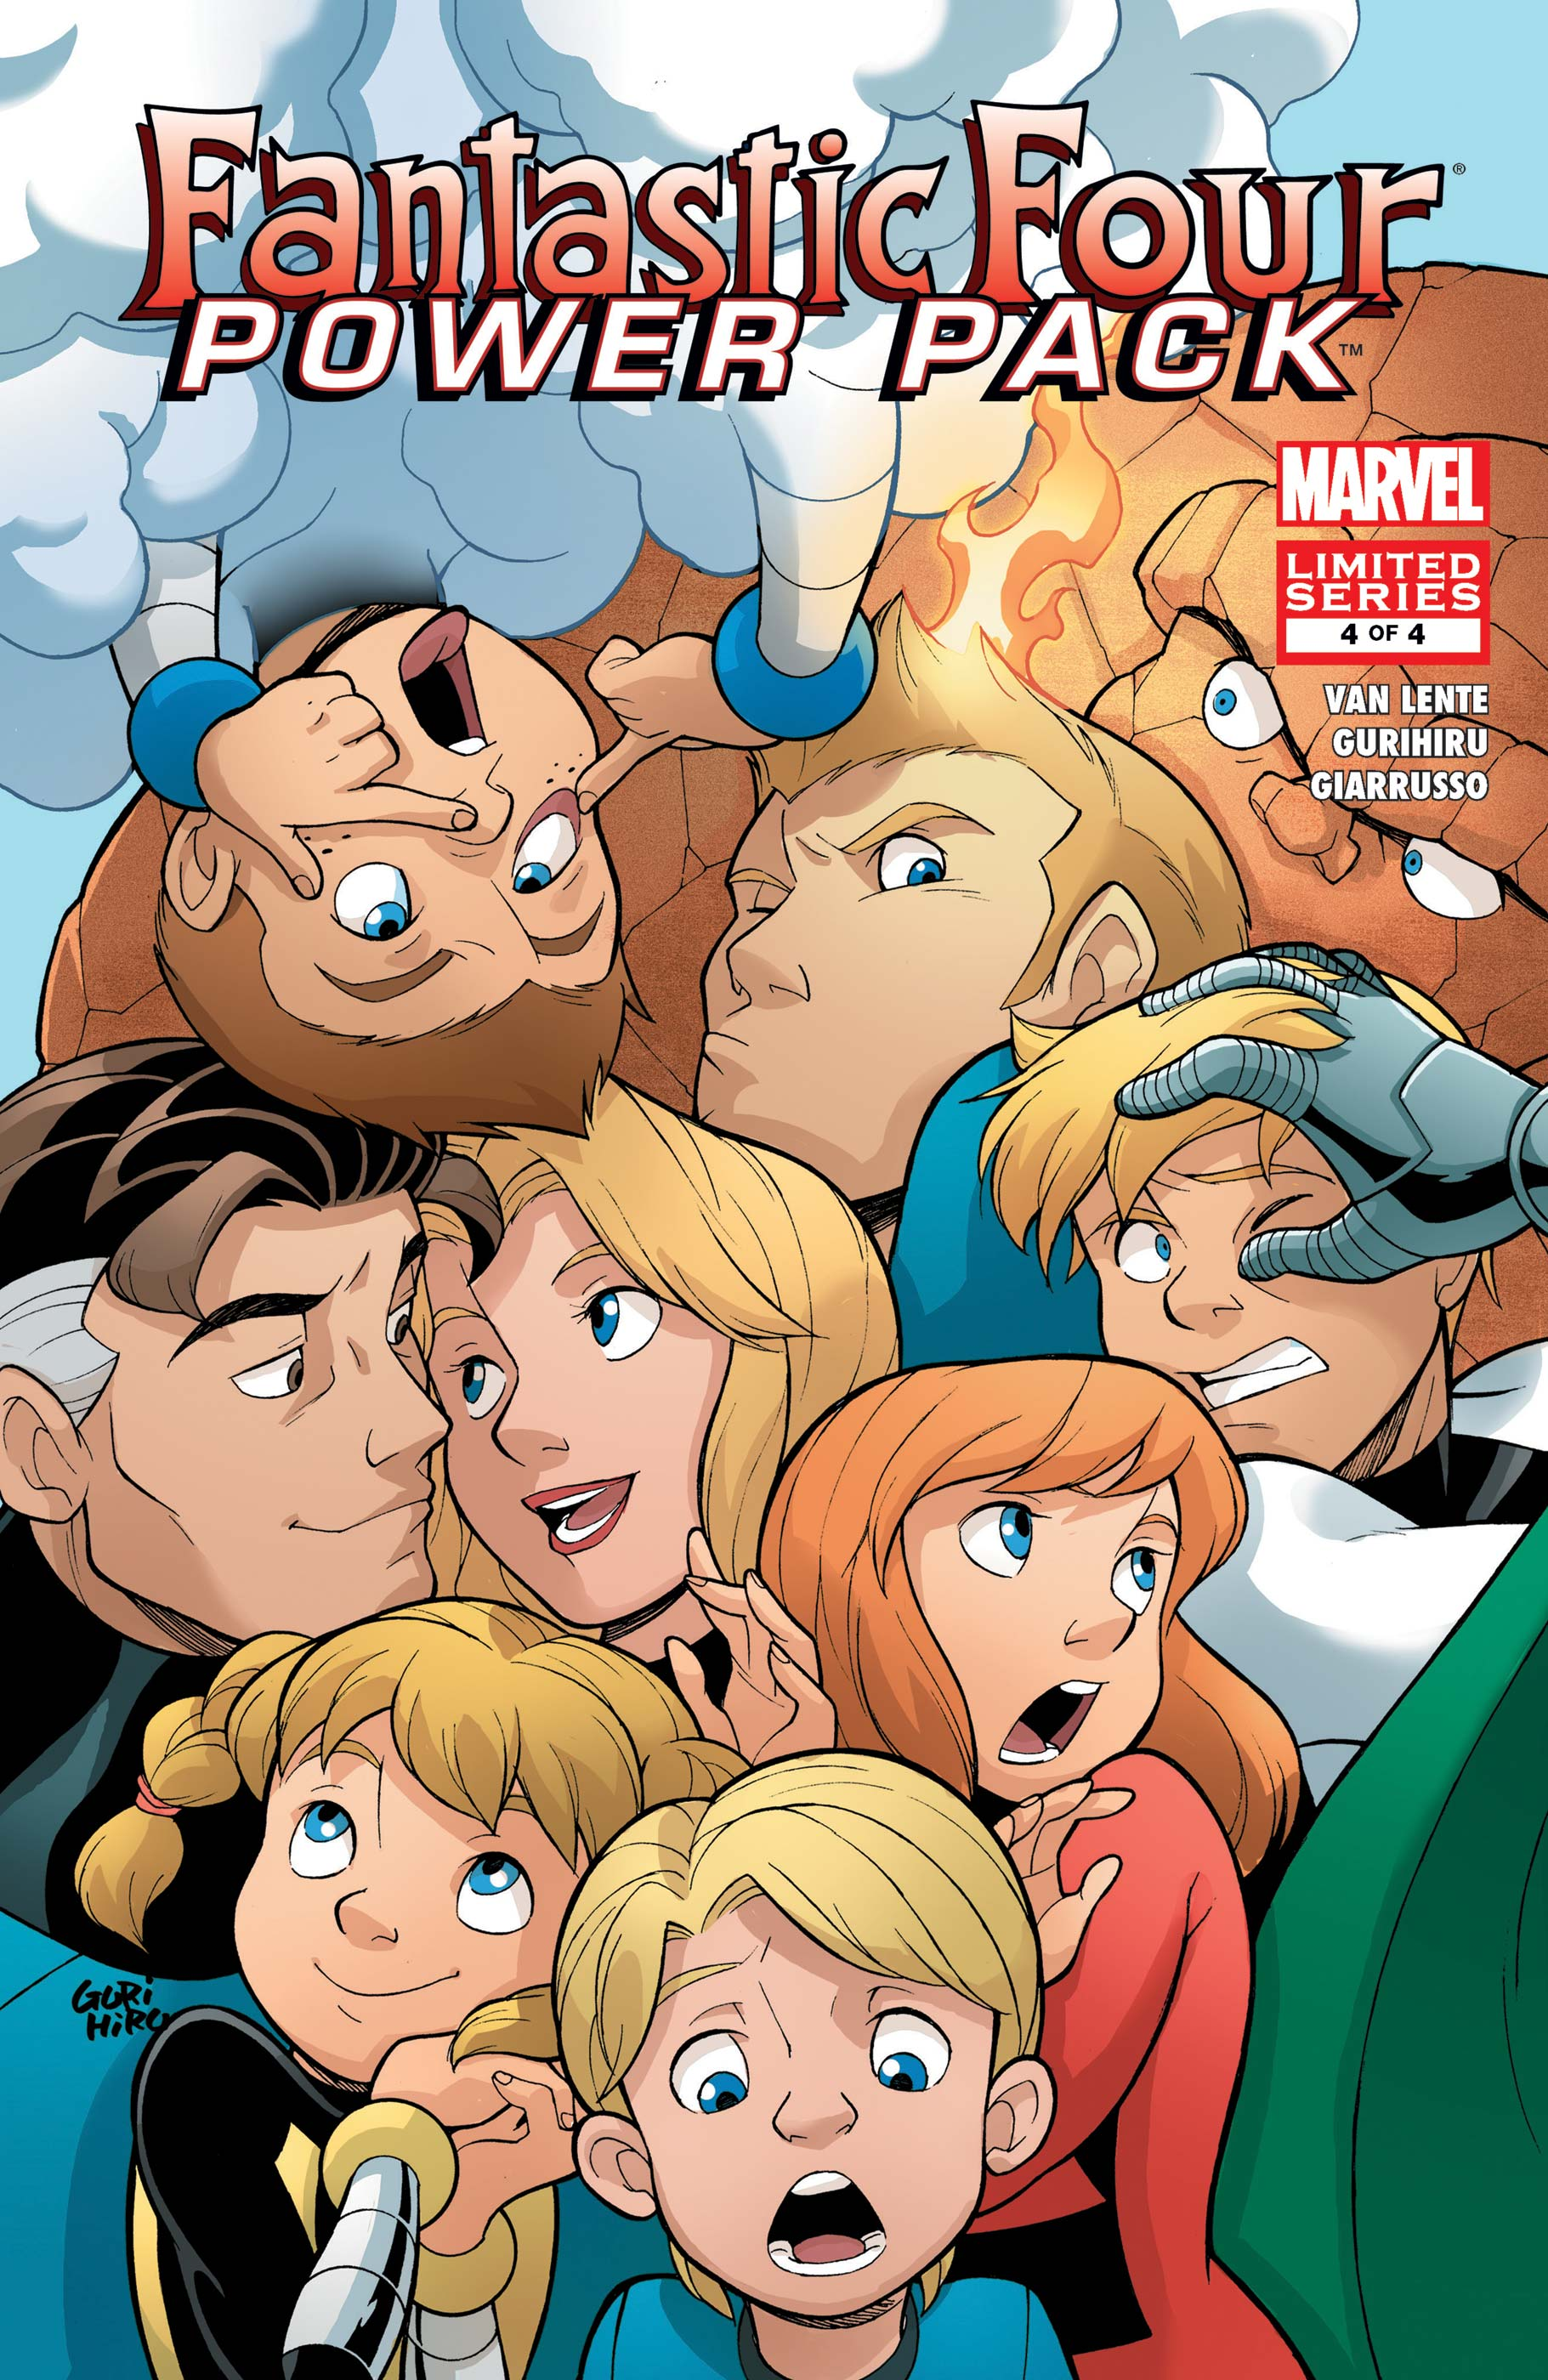 Fantastic Four and Power Pack (2007) #4